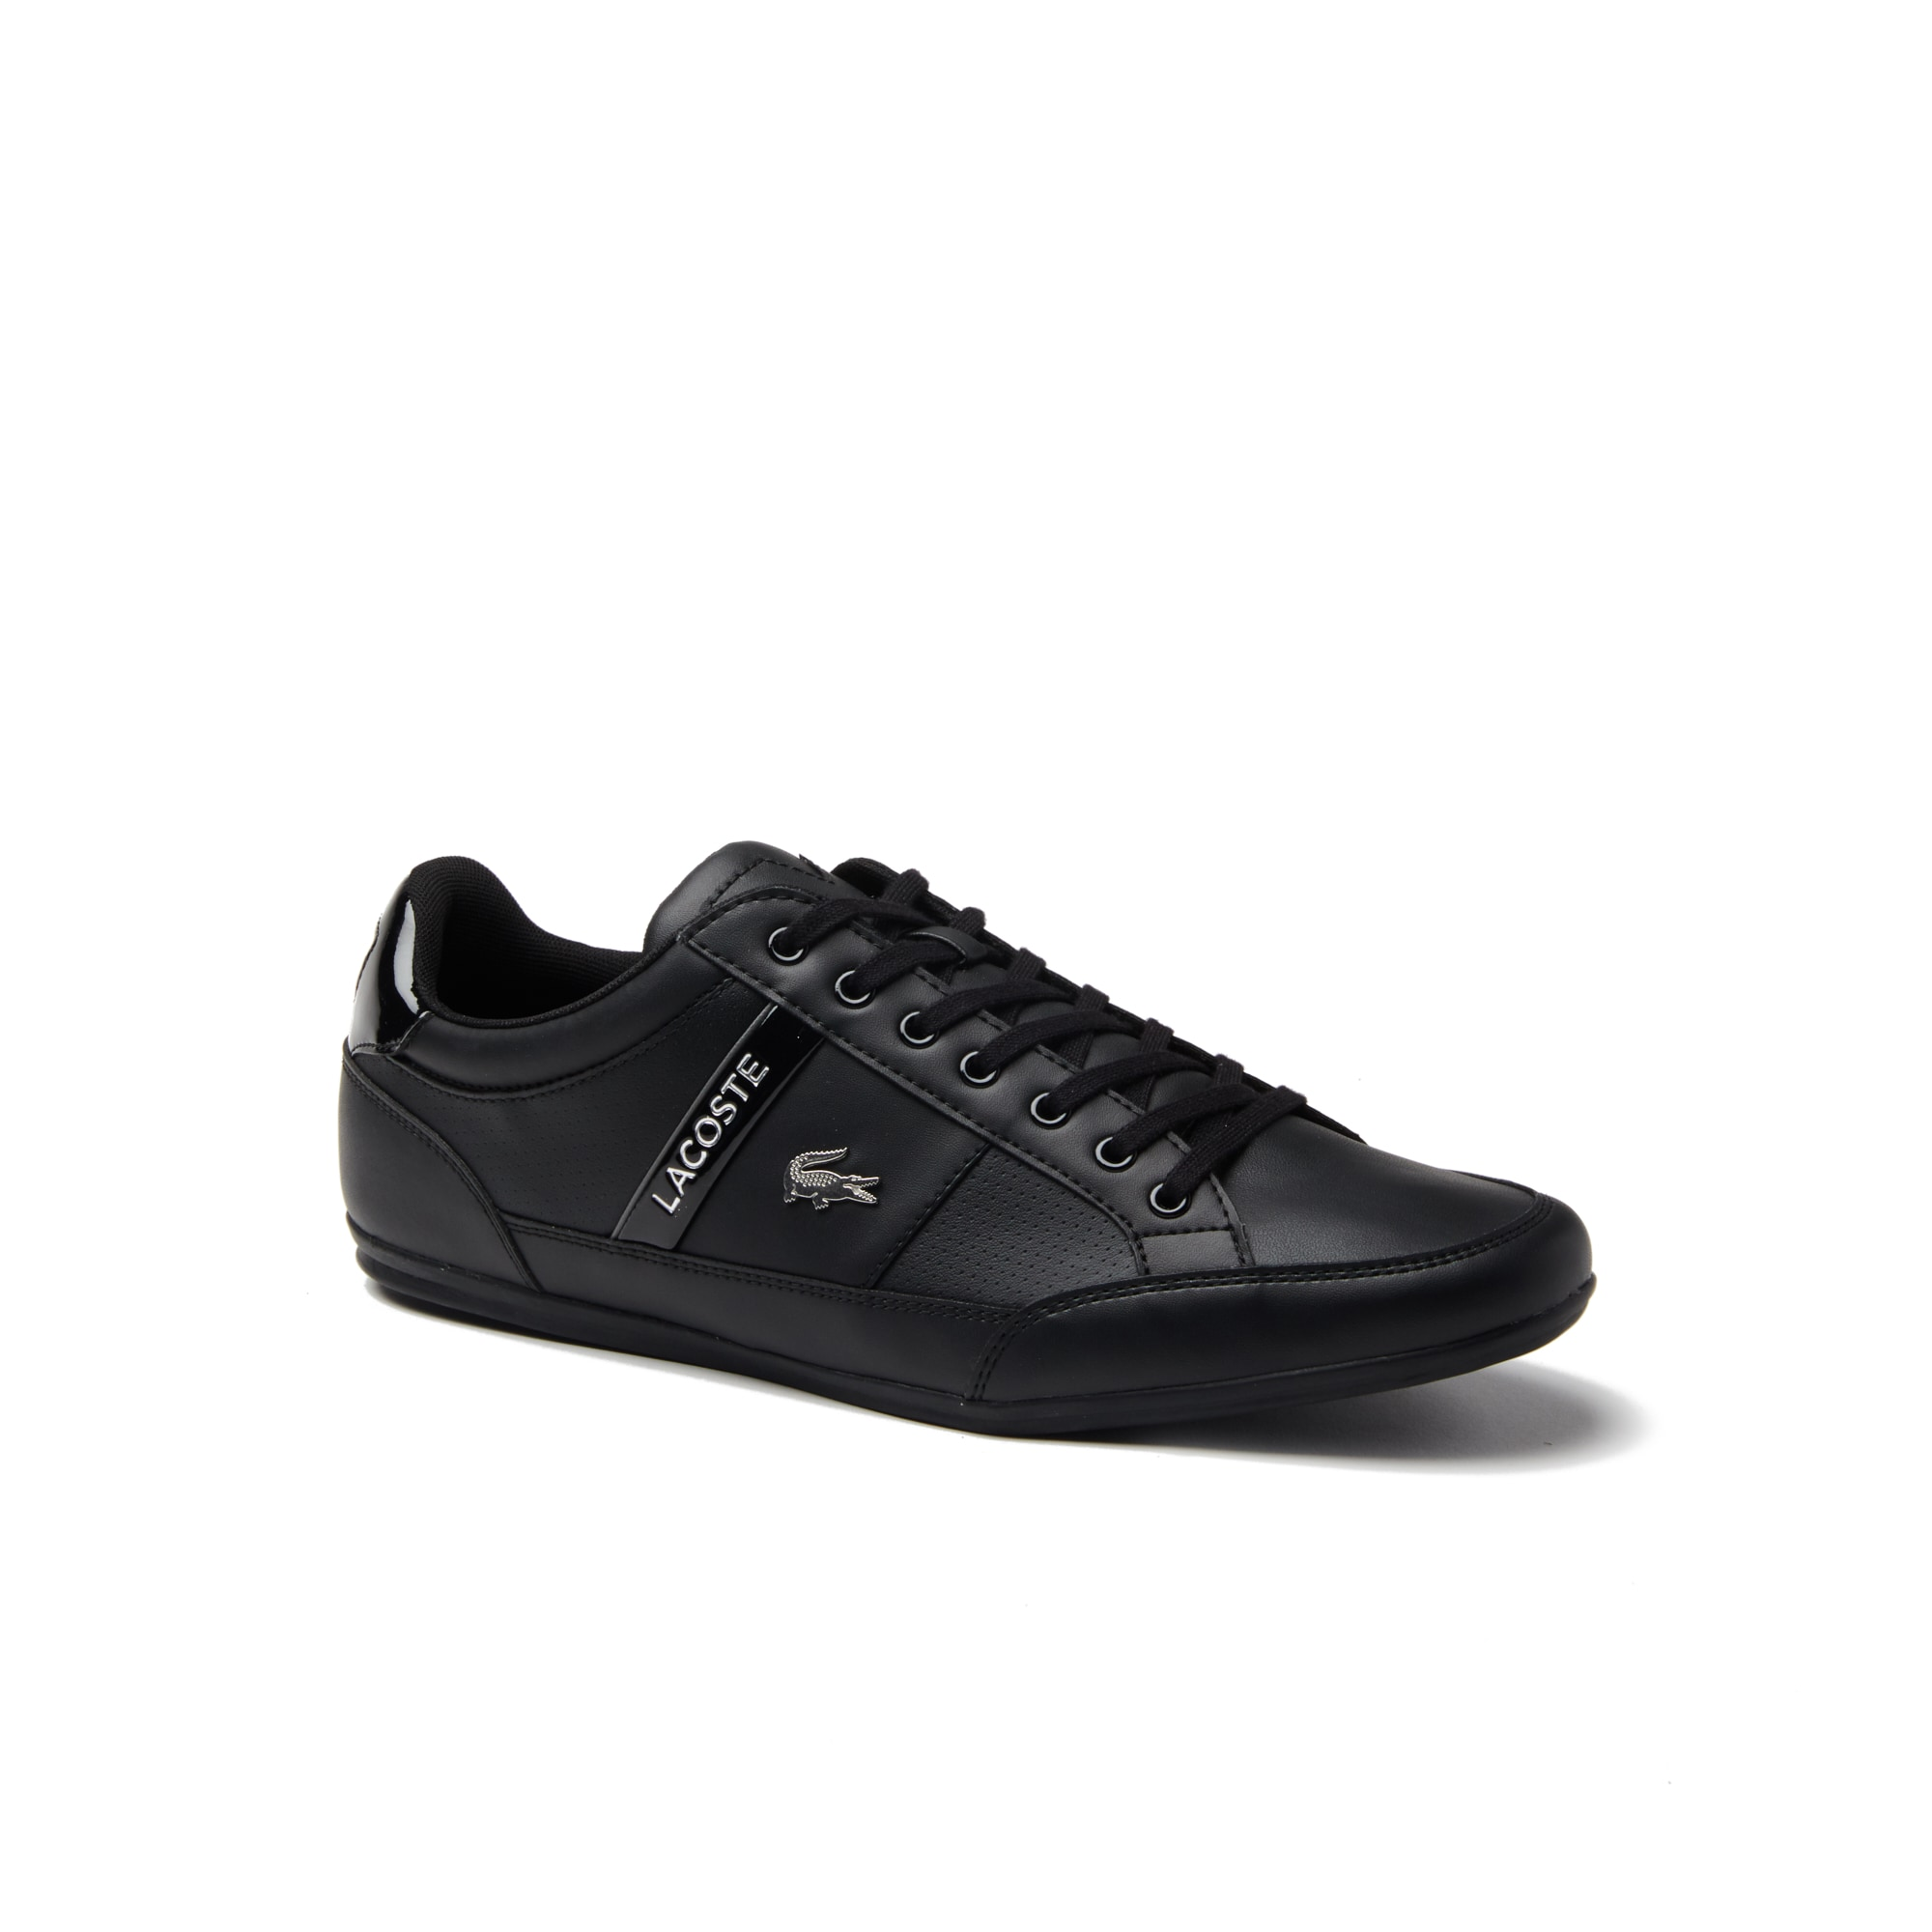 d2efe757ff6 Men's Shoes | Shoes for Men | LACOSTE